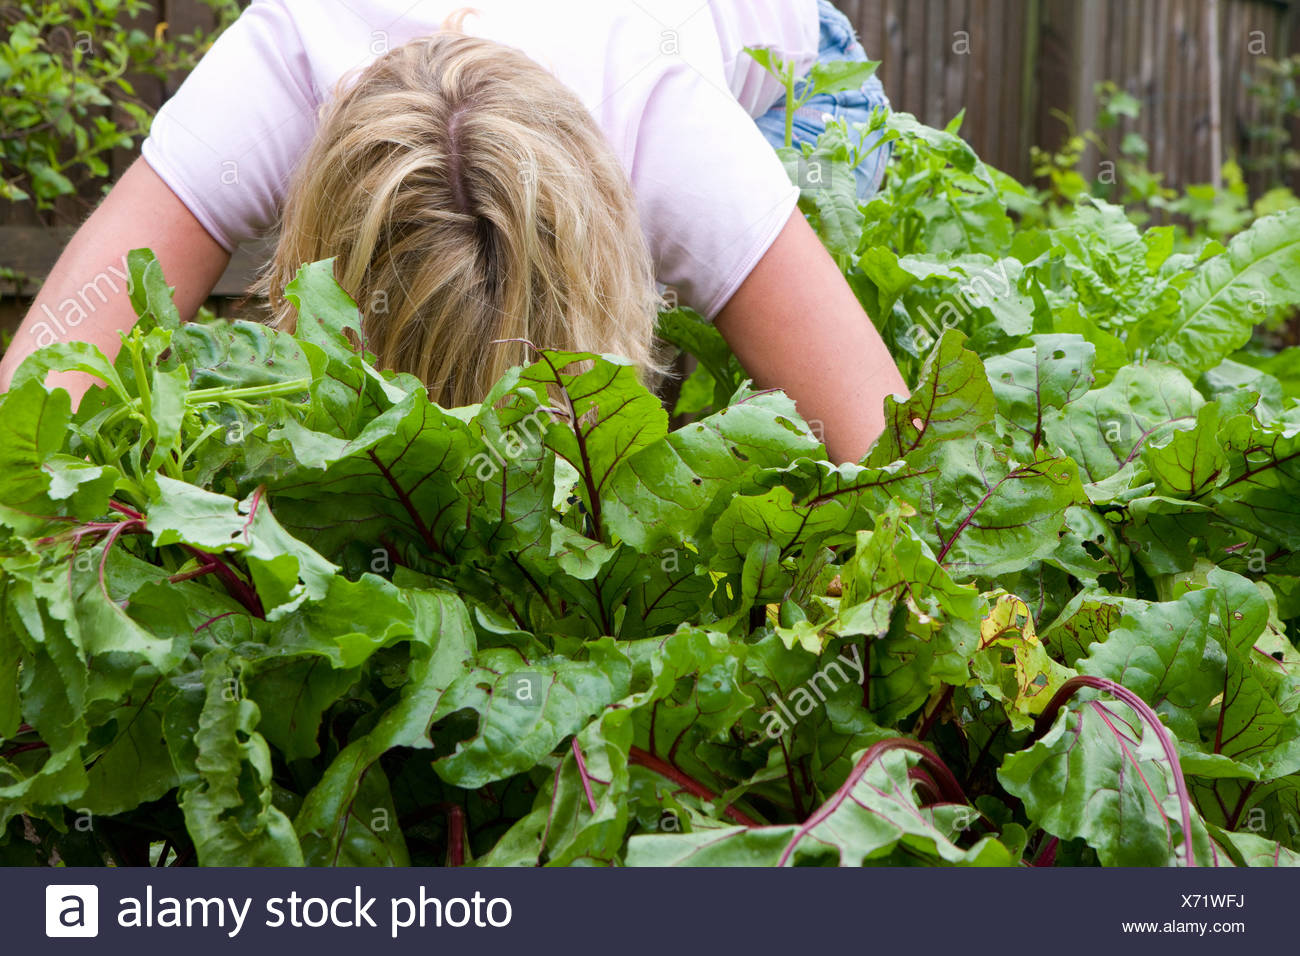 Woman harvesting fresh beetroot from garden - Stock Image